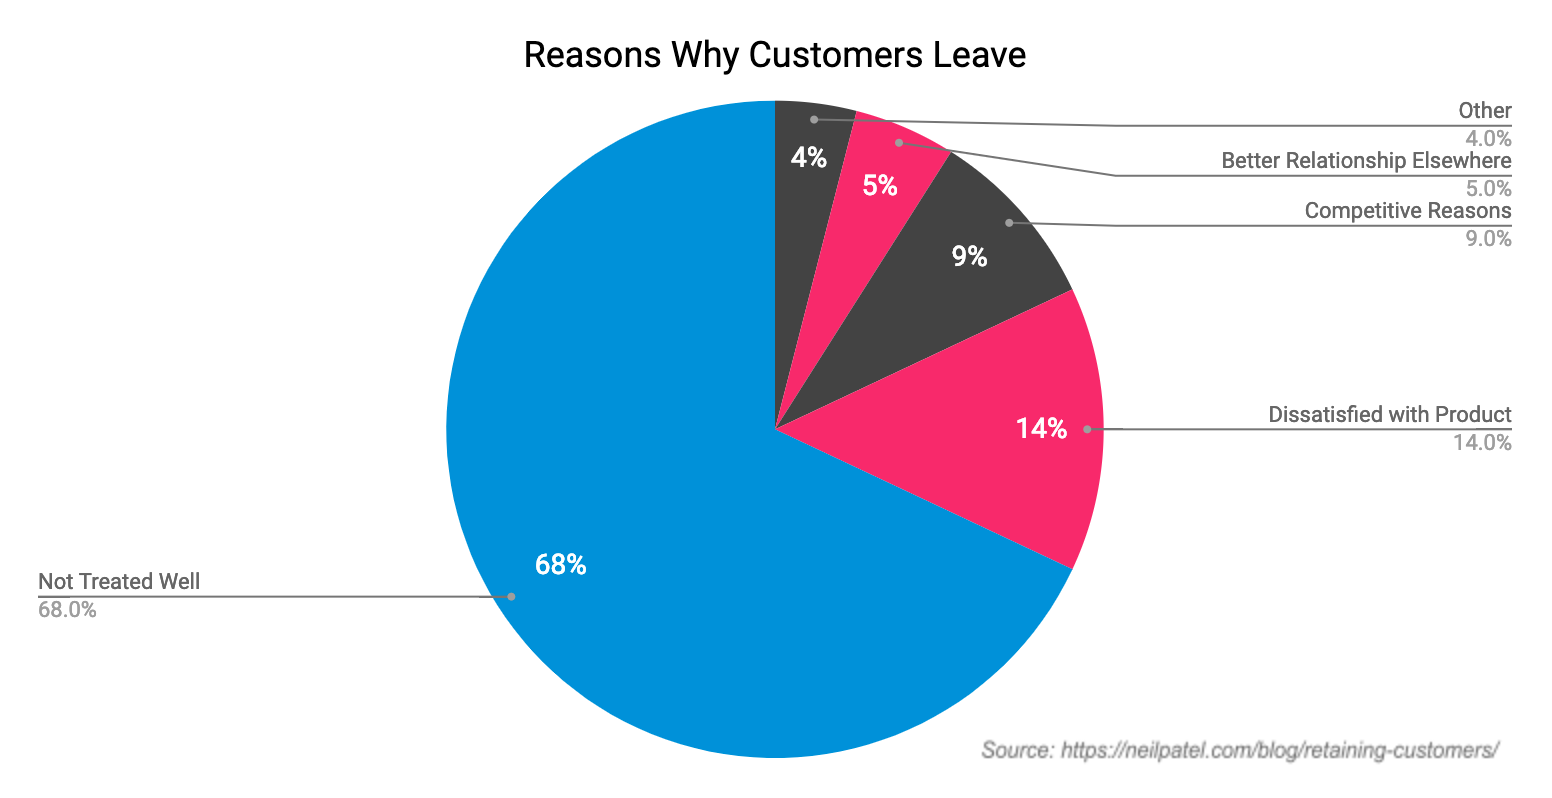 Reasons why customers leave businesses